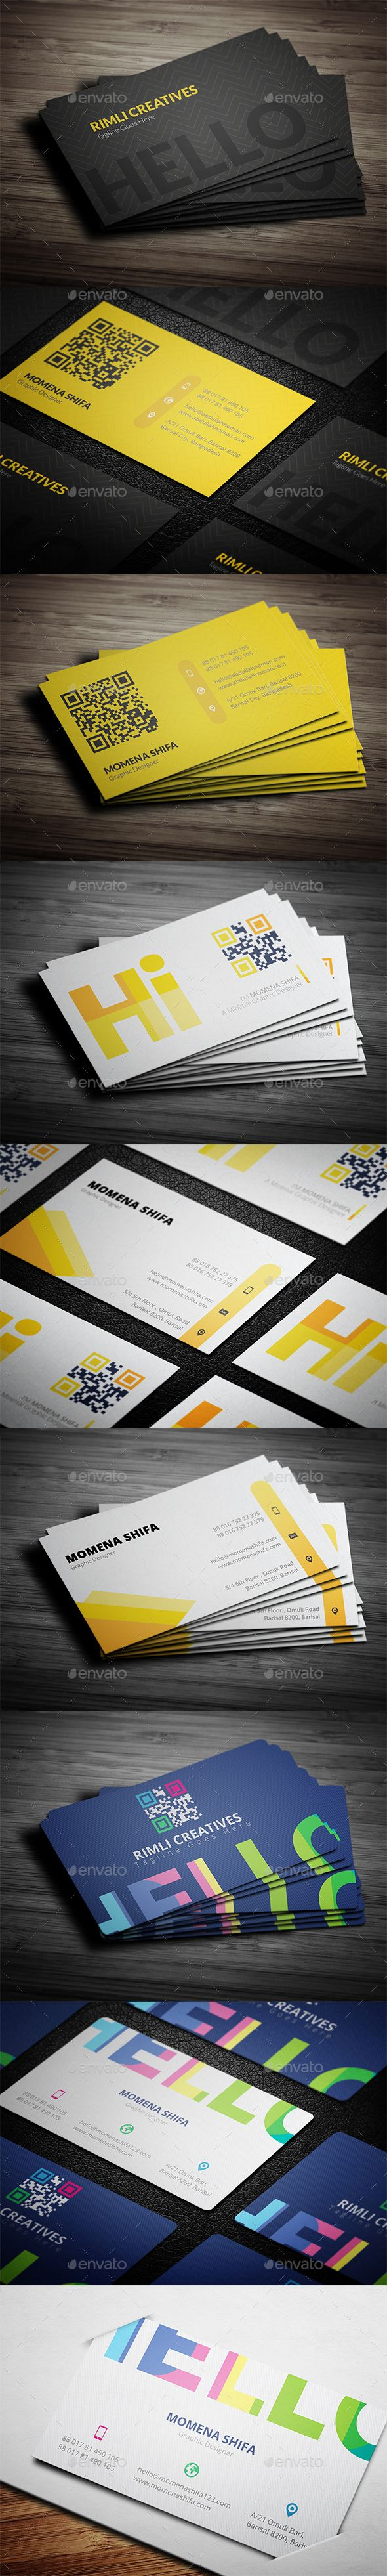 Best 25 Visiting card format ideas on Pinterest